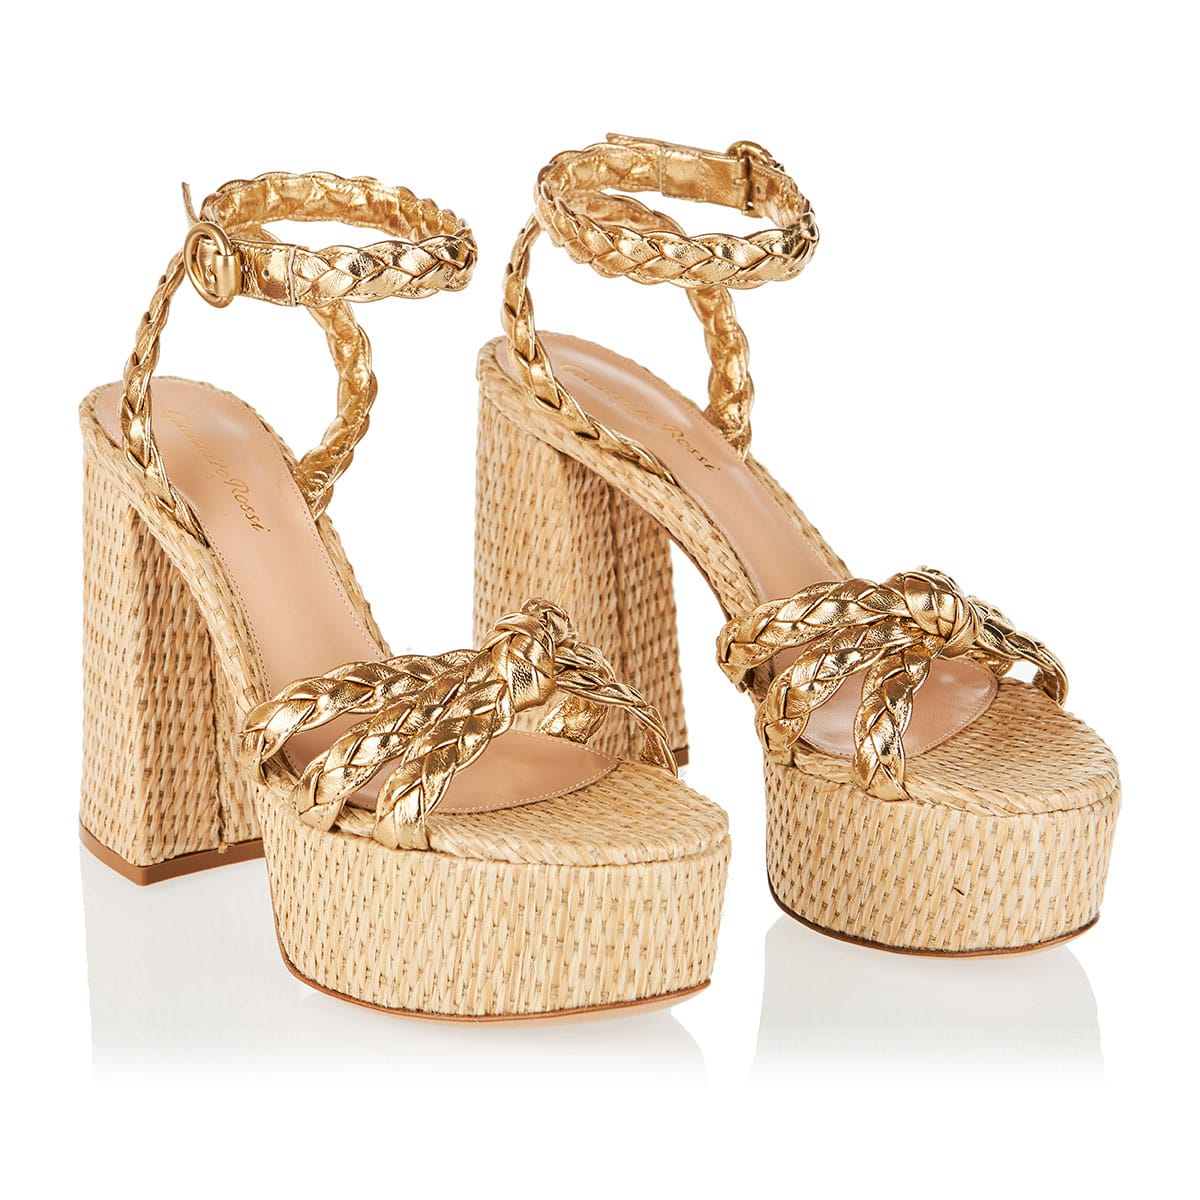 Kea 70 leather and raffia platform sandals